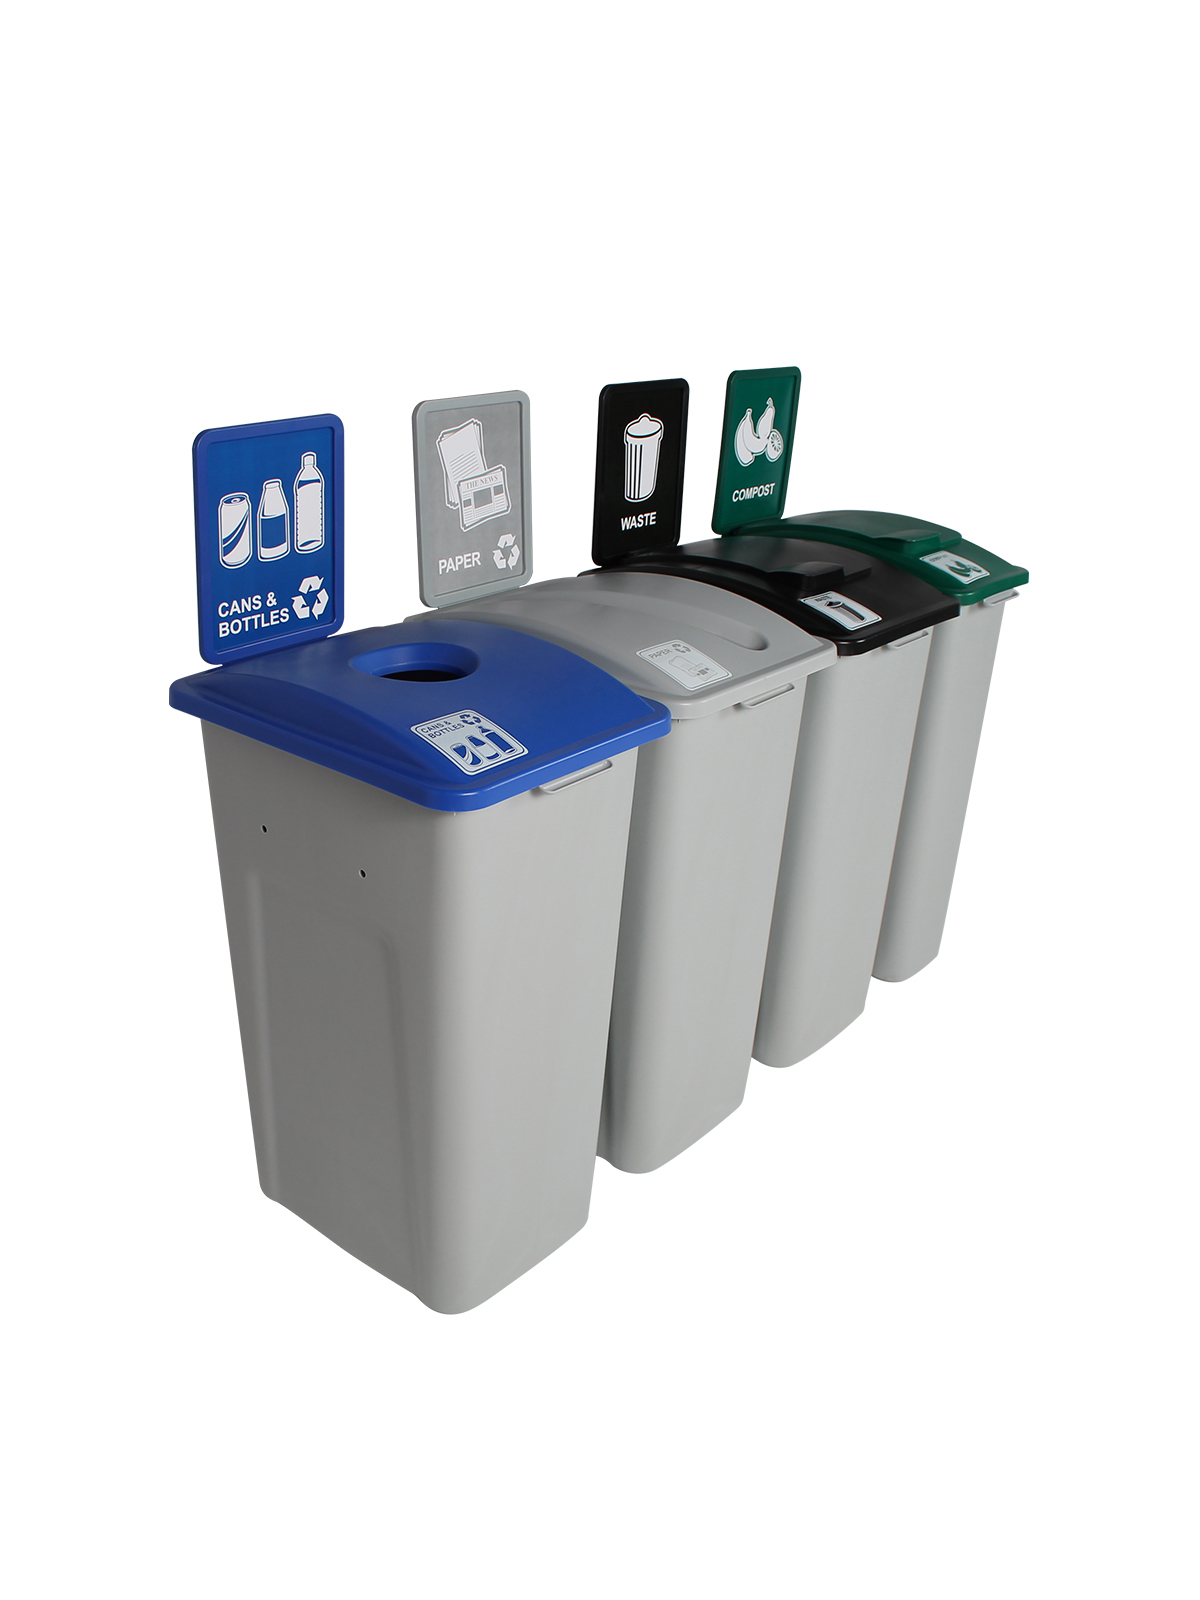 KIT XL QUAD - BDY/LID/SF - GRY/BLU/GRY/GRN/BLK CANS & BOTTLES/PAPER/COMPOST/WASTE